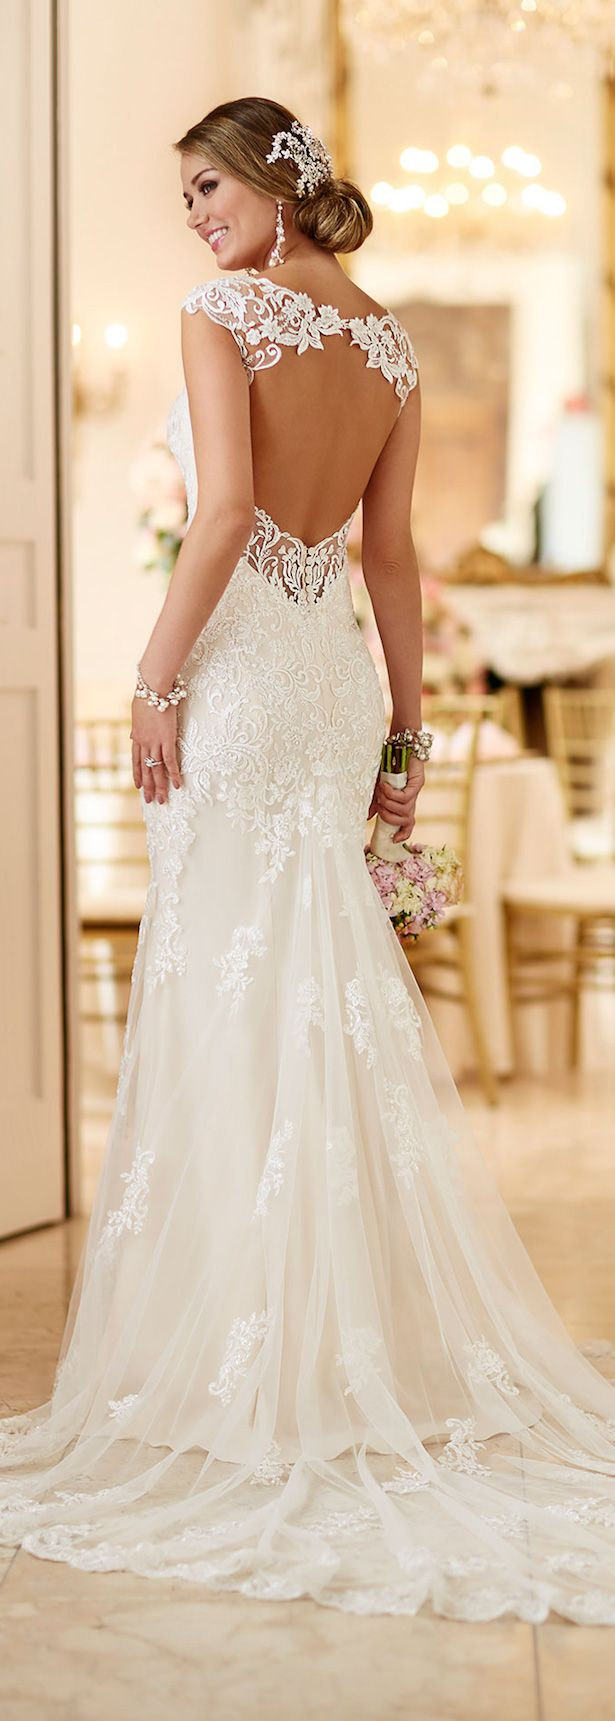 The 25 best wedding dresses ideas on pinterest spring for Best day for a wedding